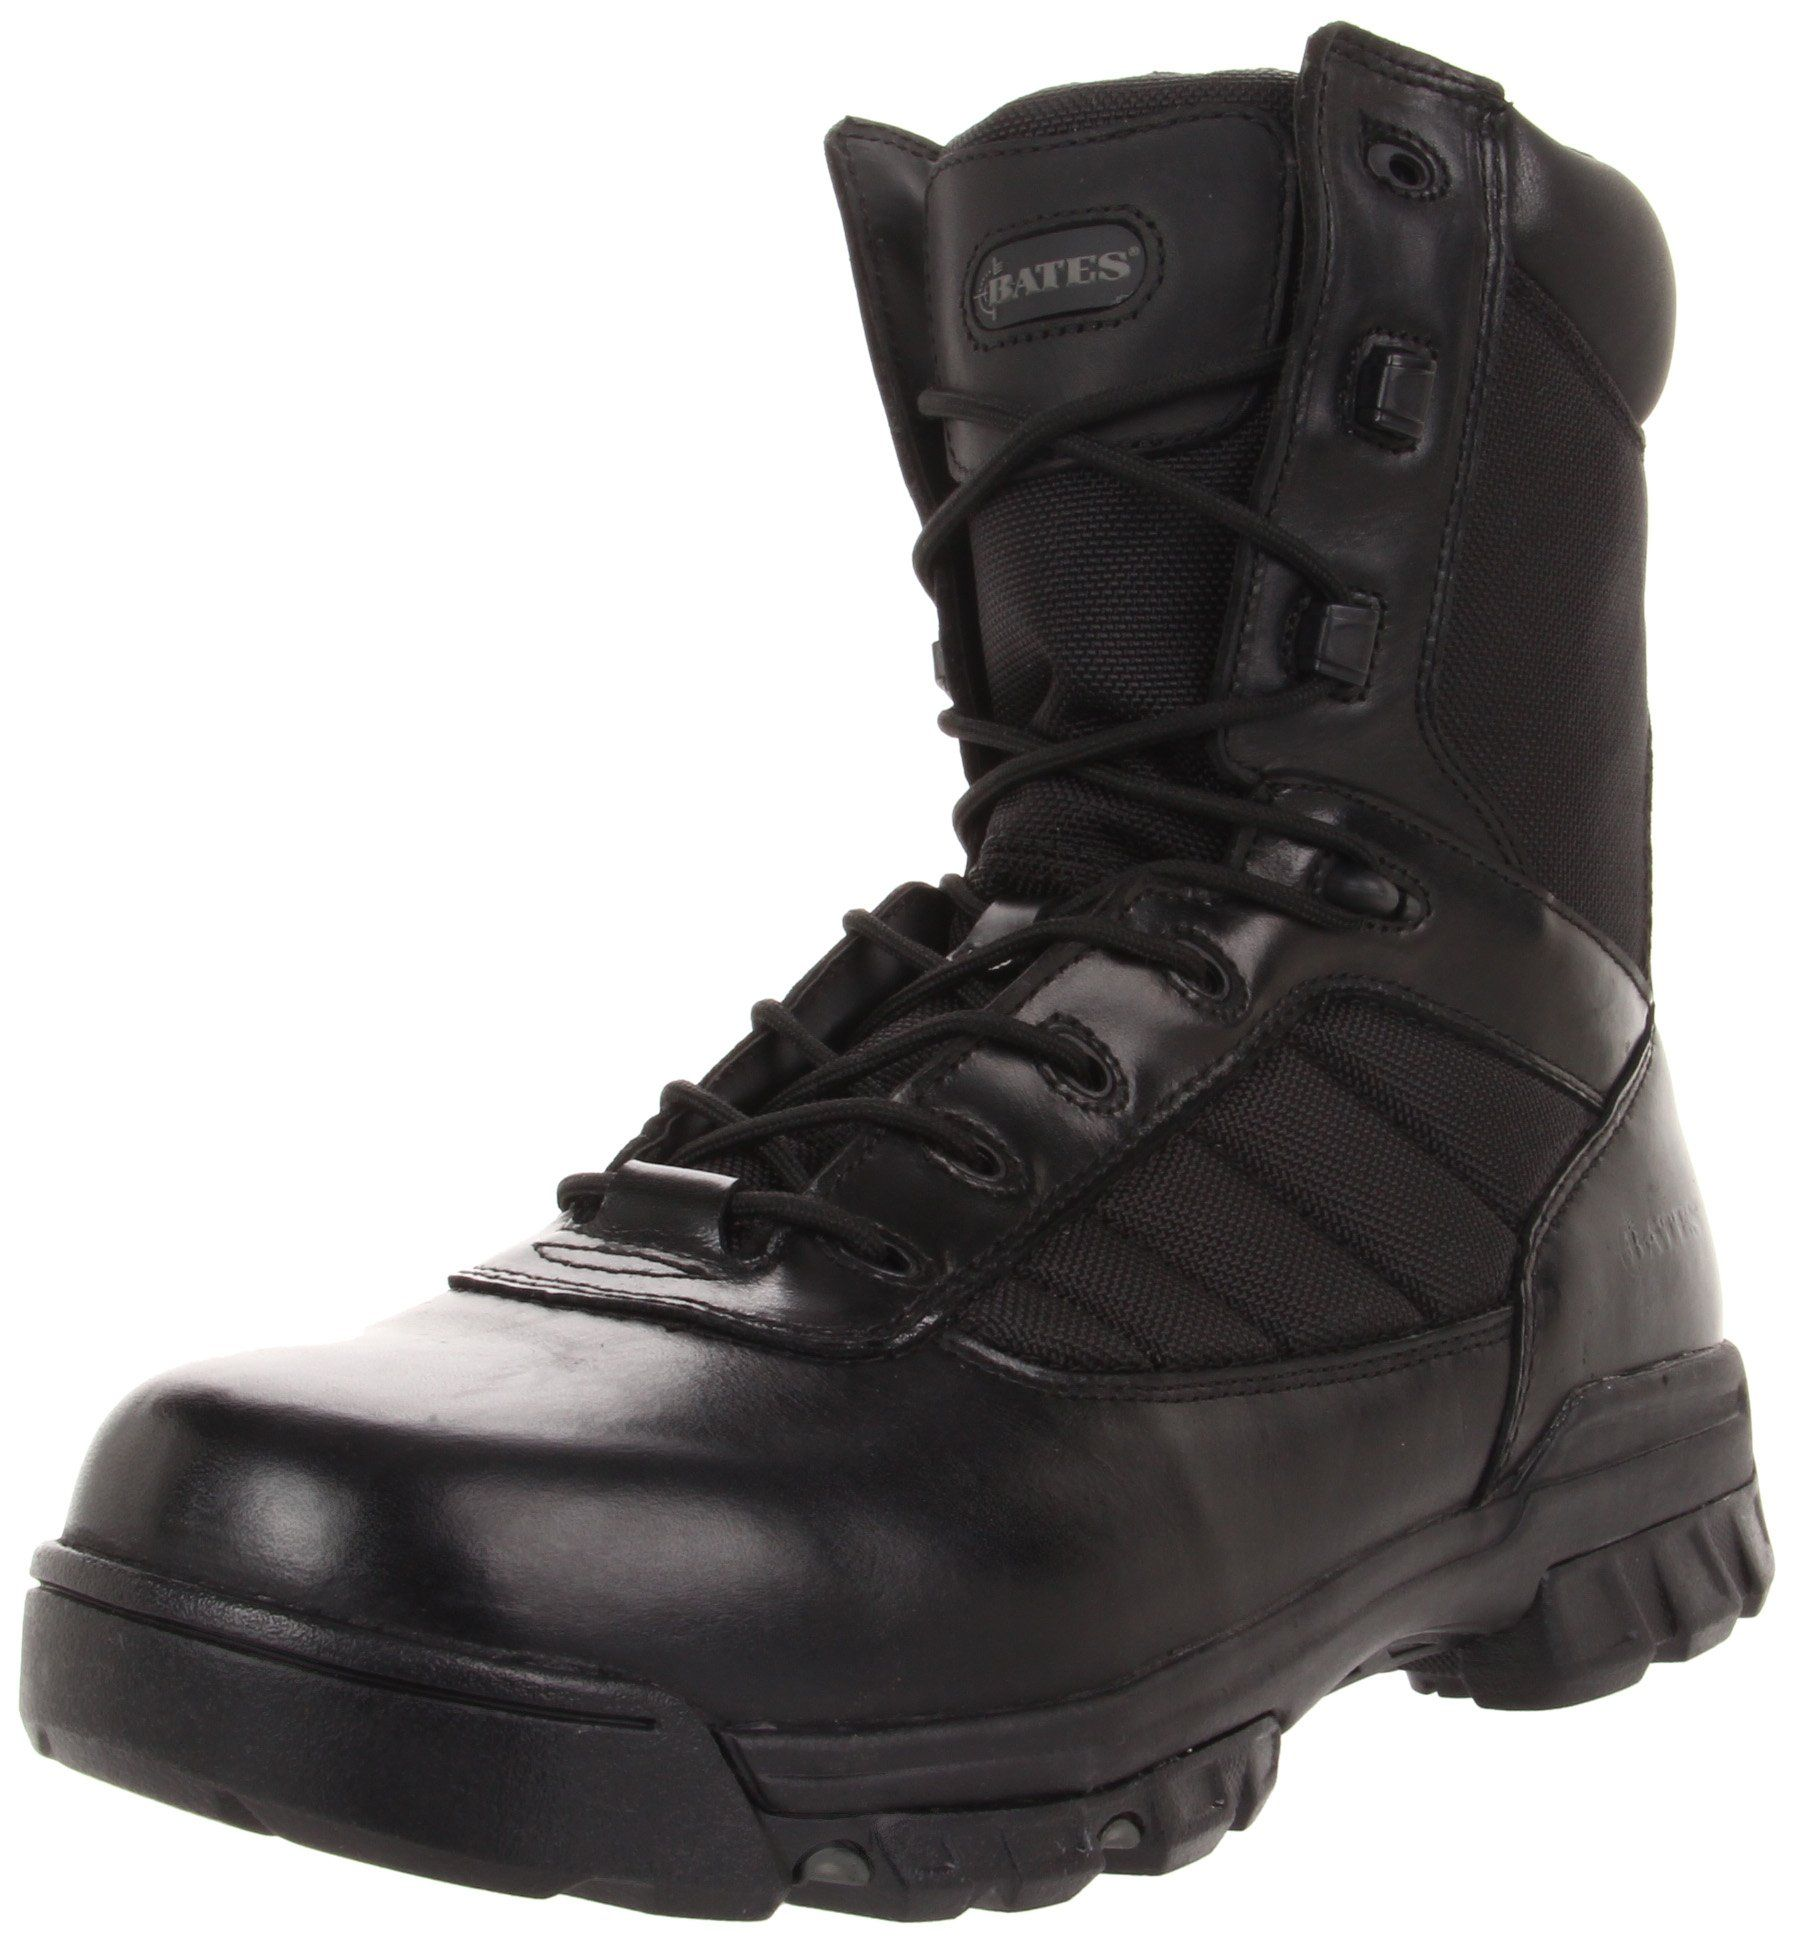 Bates mens ultralites 8 inches tactical sport side zip